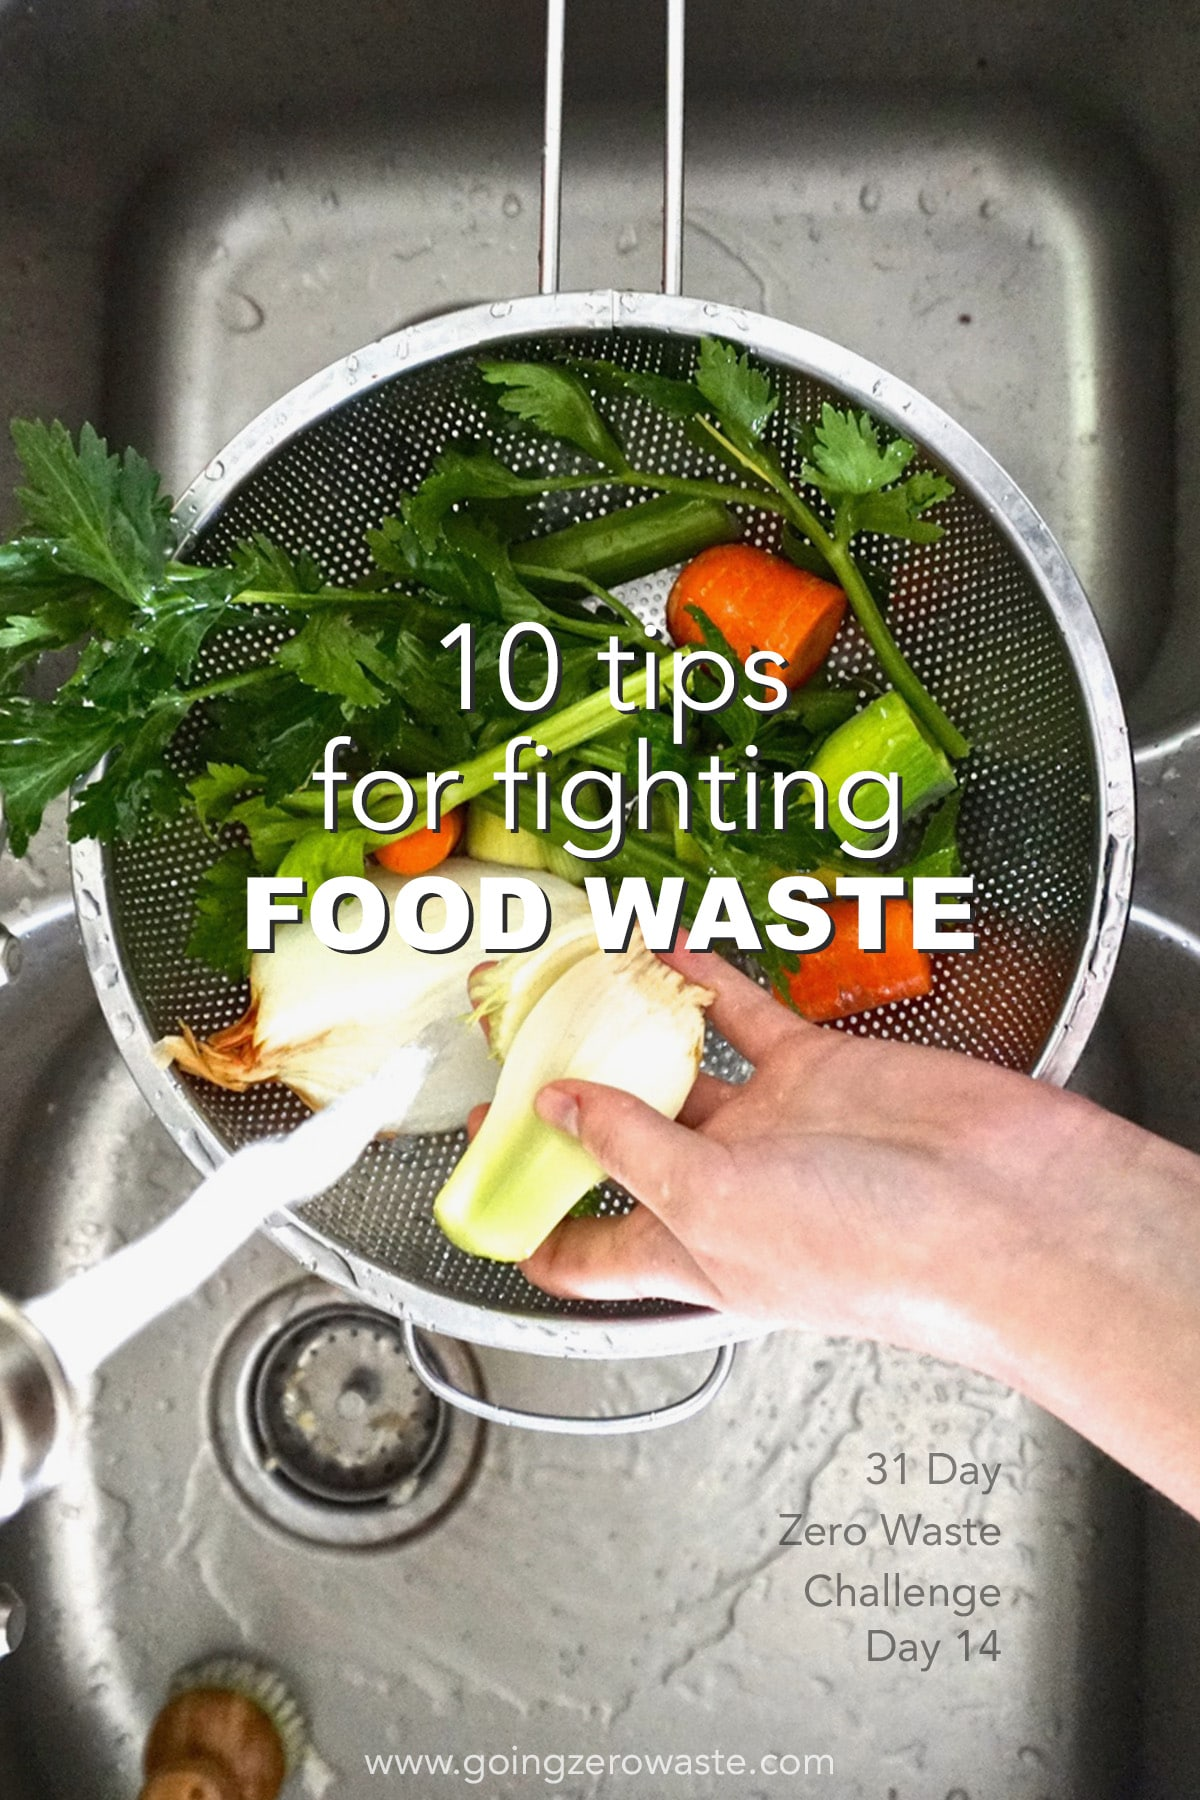 10 Tips for Fighting Food Waste - Day 14 of the Zero Waste Challenge